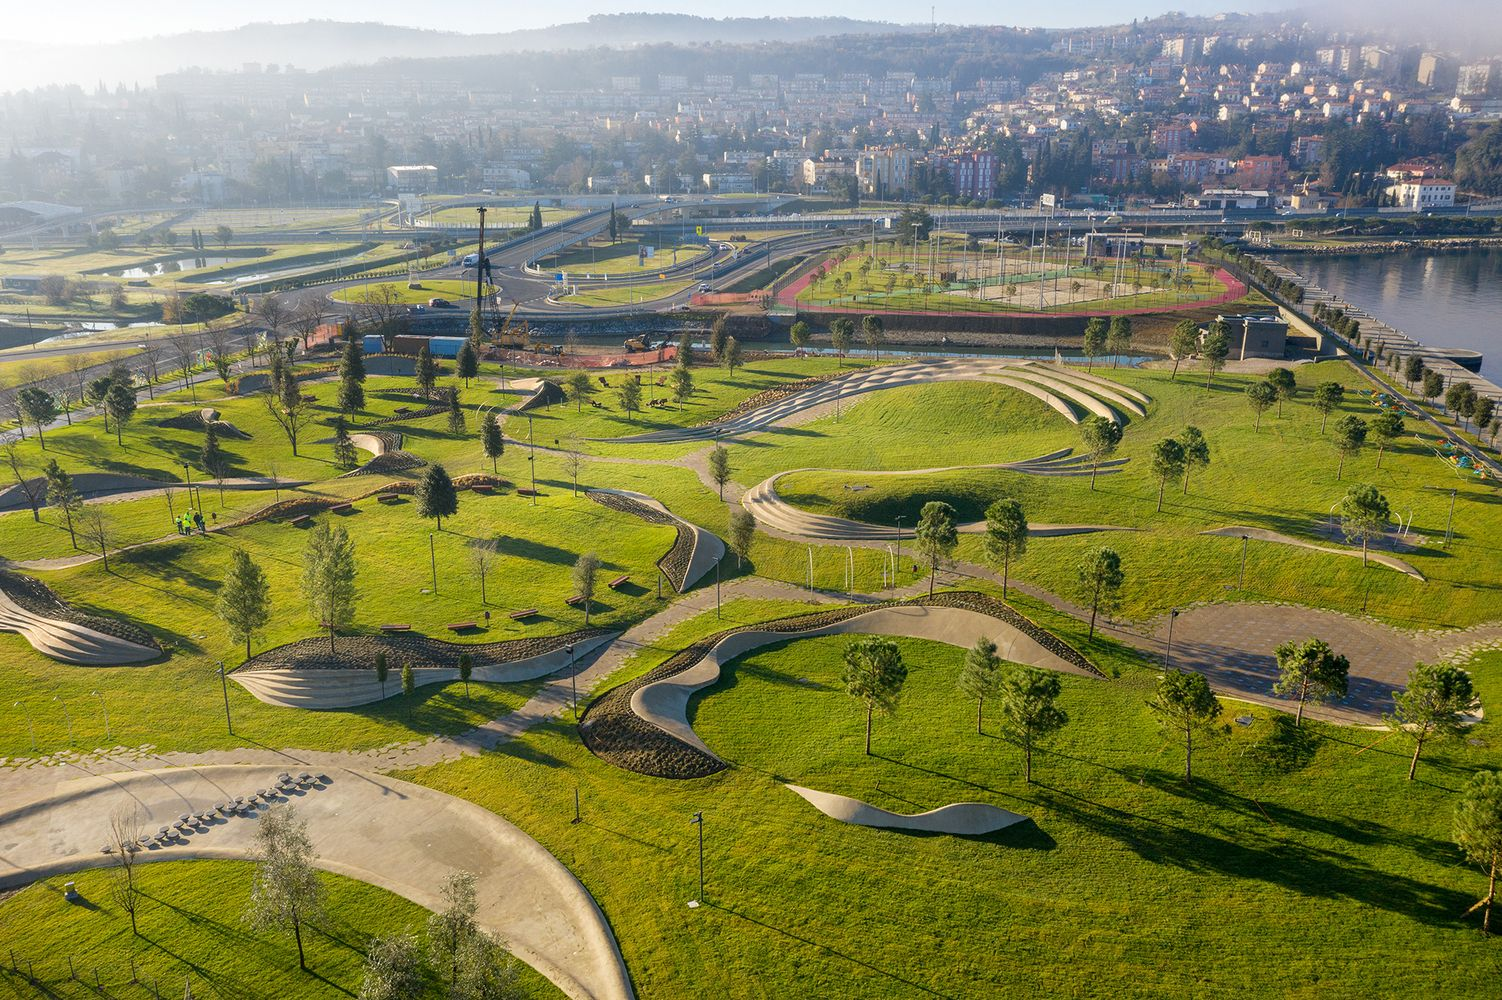 Gallery Of 100 Public Spaces From Tiny Squares To Urban Parks 63 Urban Park Landscape Public Space